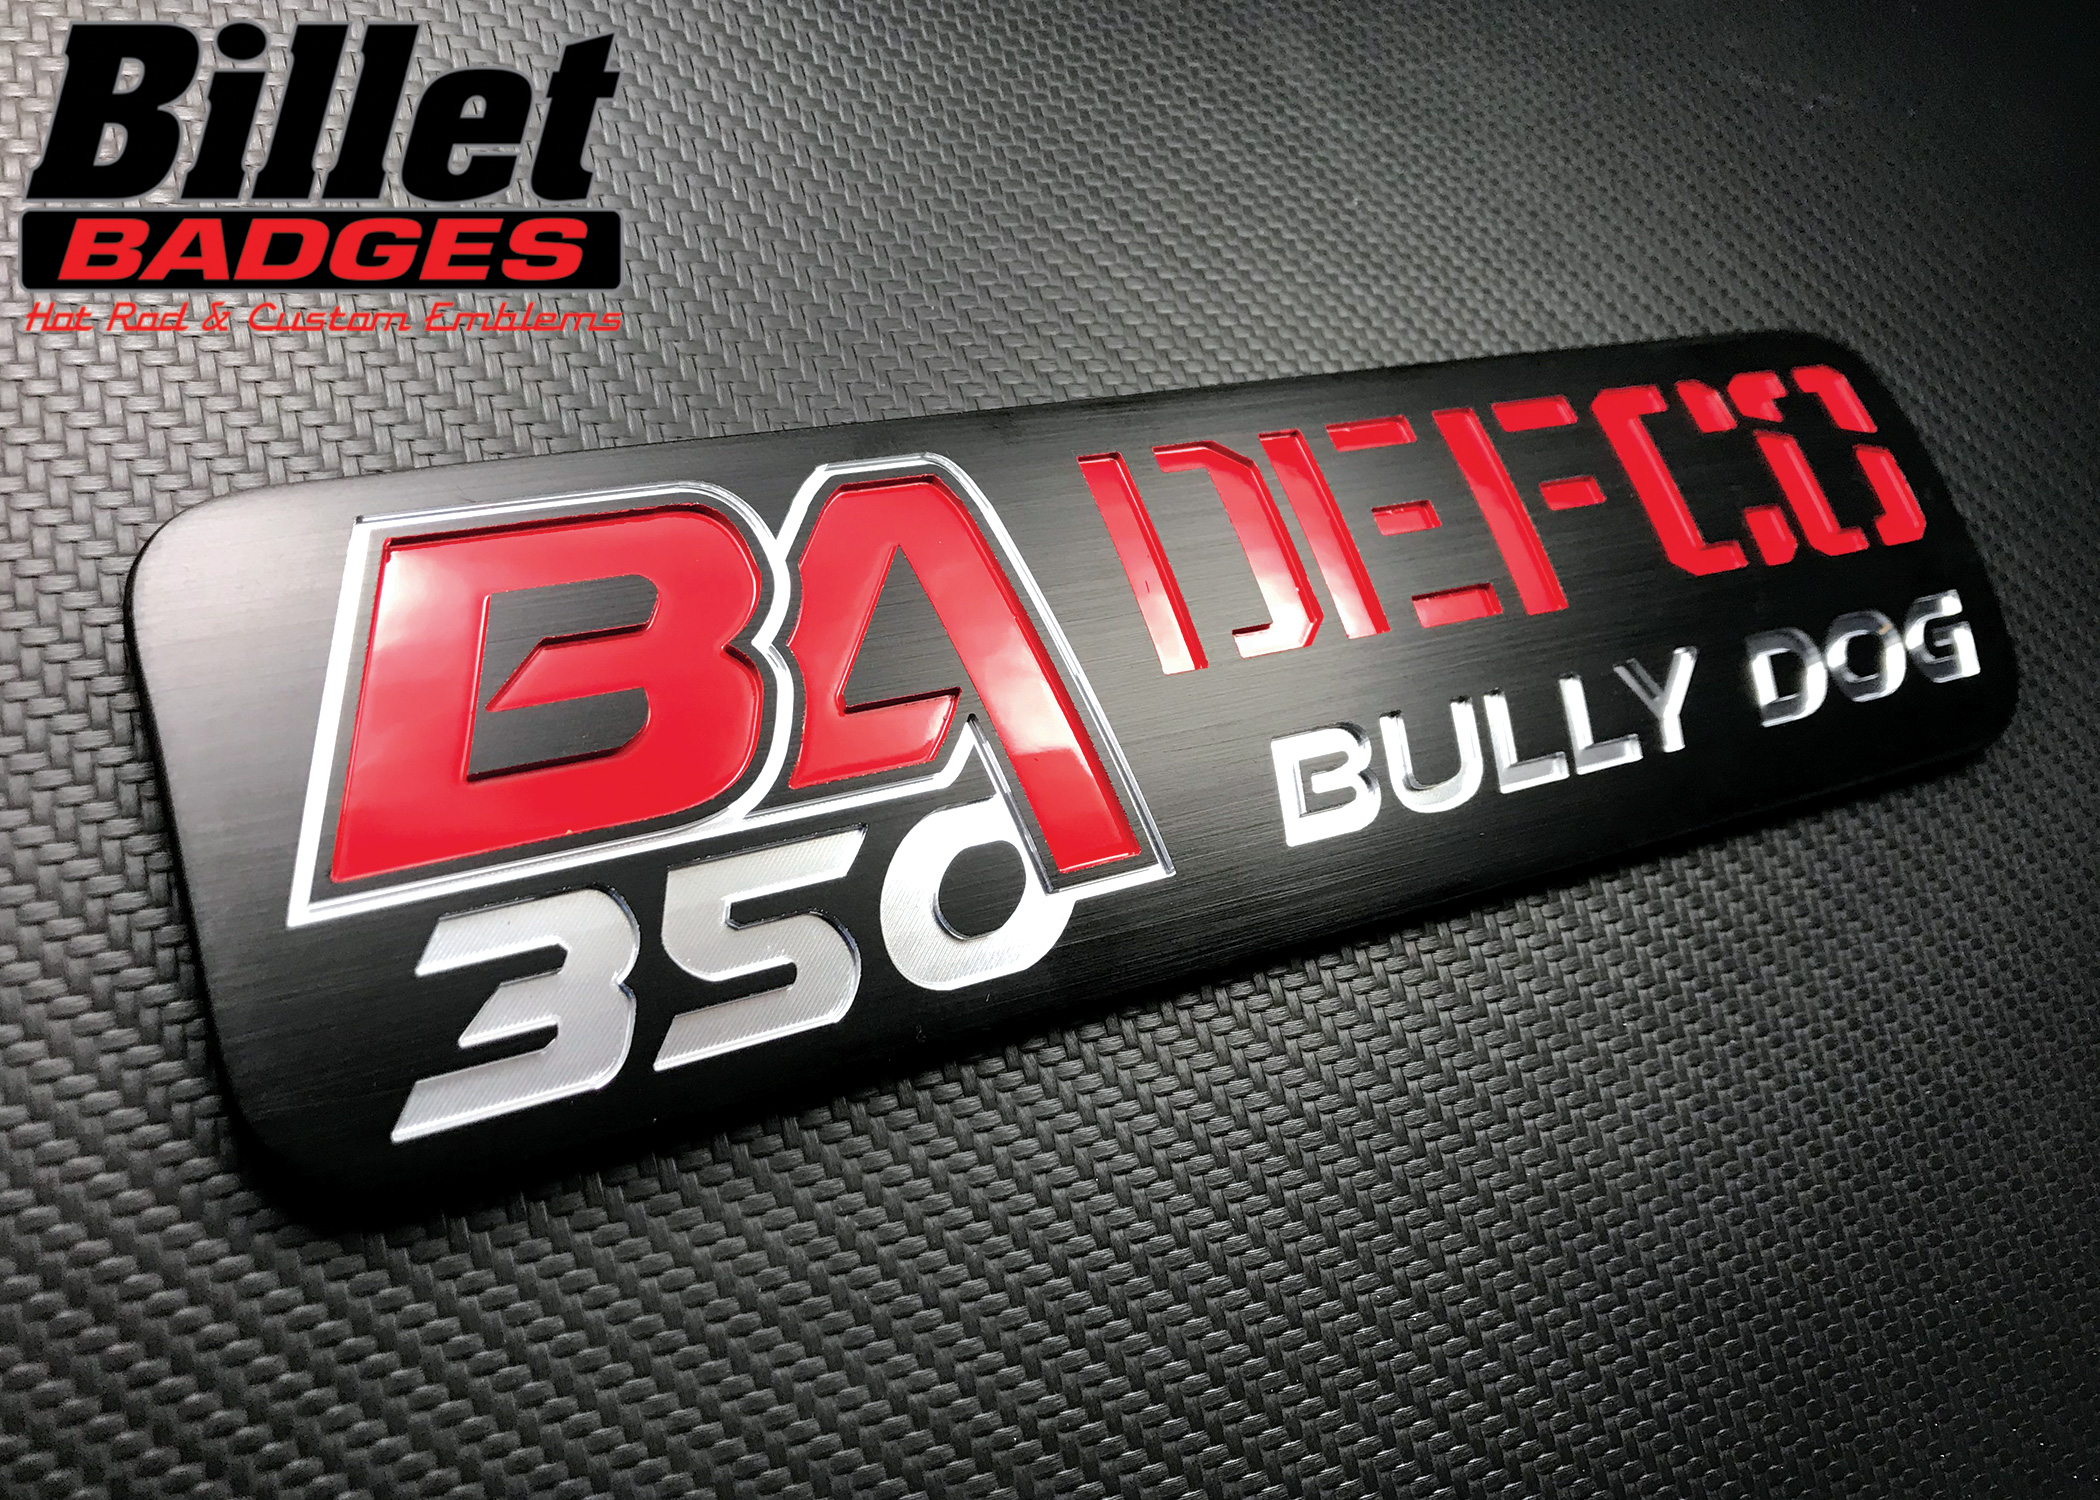 BA 350 Defco Bully Dog